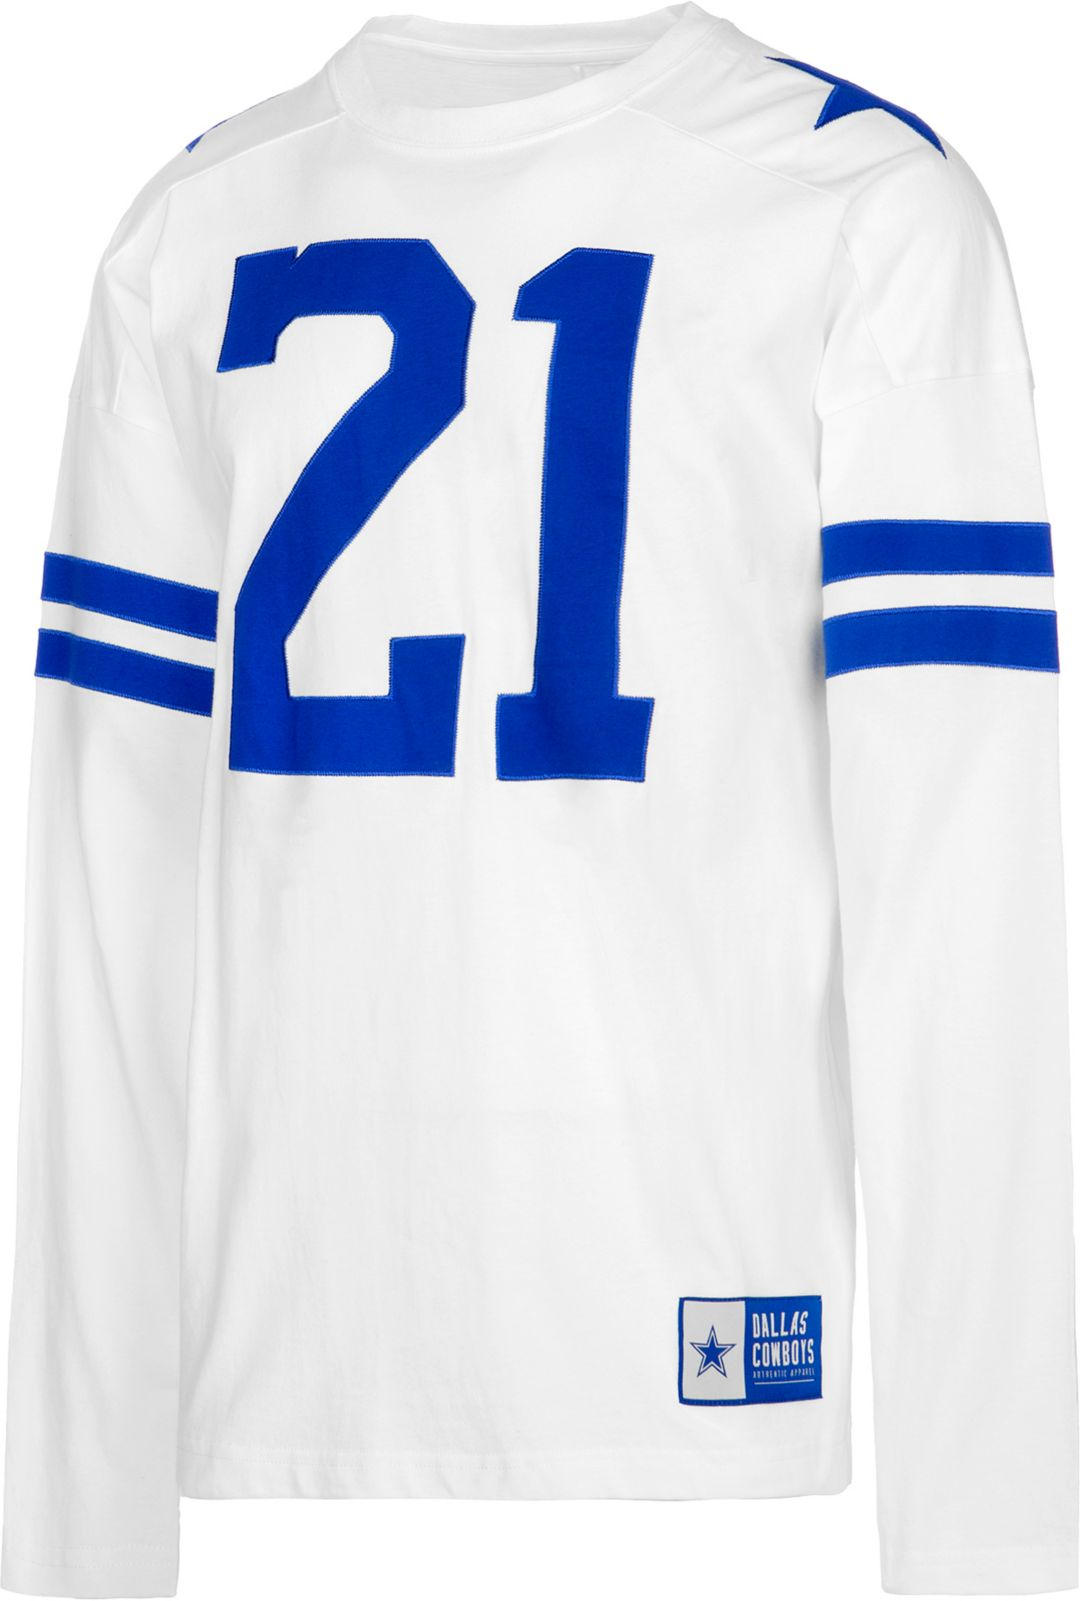 reputable site 6de22 fe1f0 Dallas Cowboys Merchandising Men's Ezekiel Elliott #21 Retro Long Sleeve  White Shirt